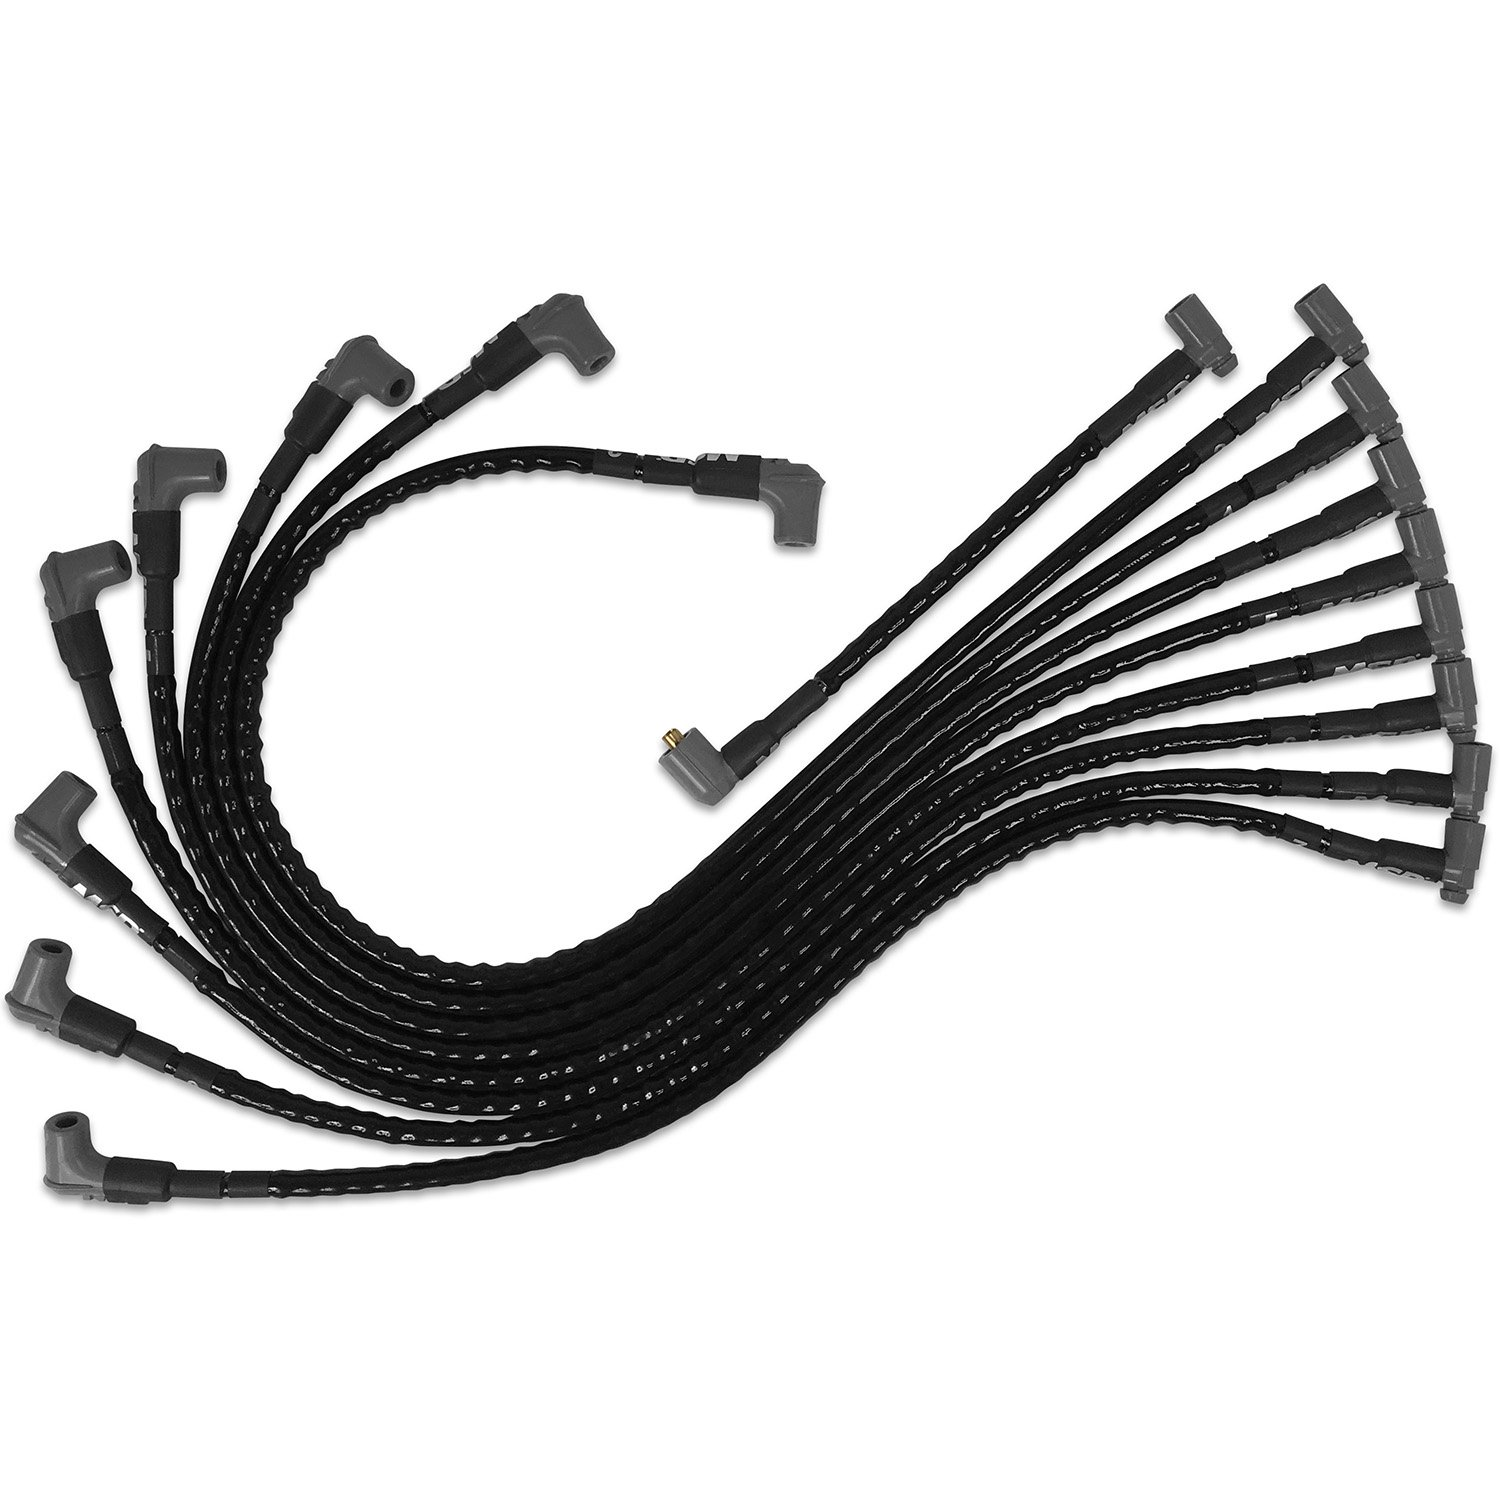 MSD 35591 Sleeved Spark Plug Wires for SBC under exhaust, HEI - MSD ...